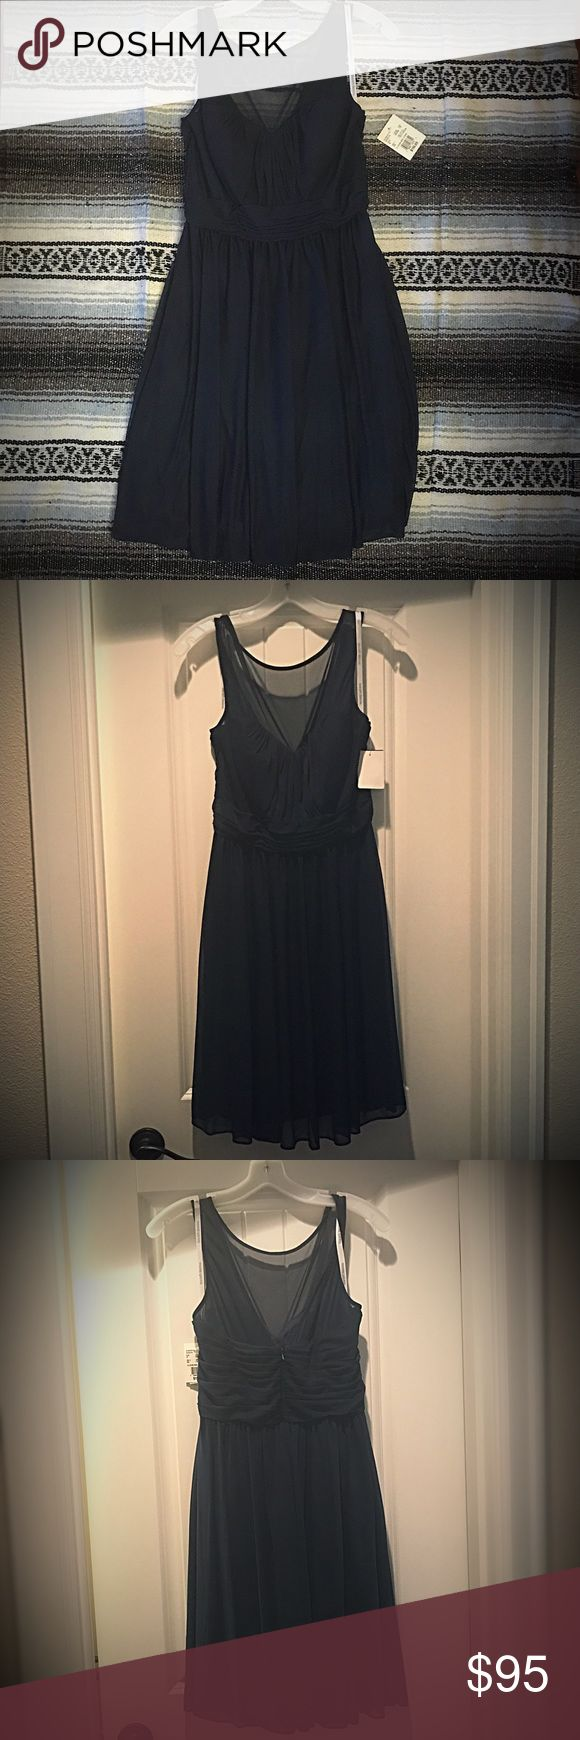 David's Bridal, never worn, marine, illusion mesh David's Bridal, never worn, marine, illusion mesh, ordered this for a wedding but we changed dresses so I won't be needing it, still comes with dress bag. Still a really cute dress 👗 David's Bridal Dresses